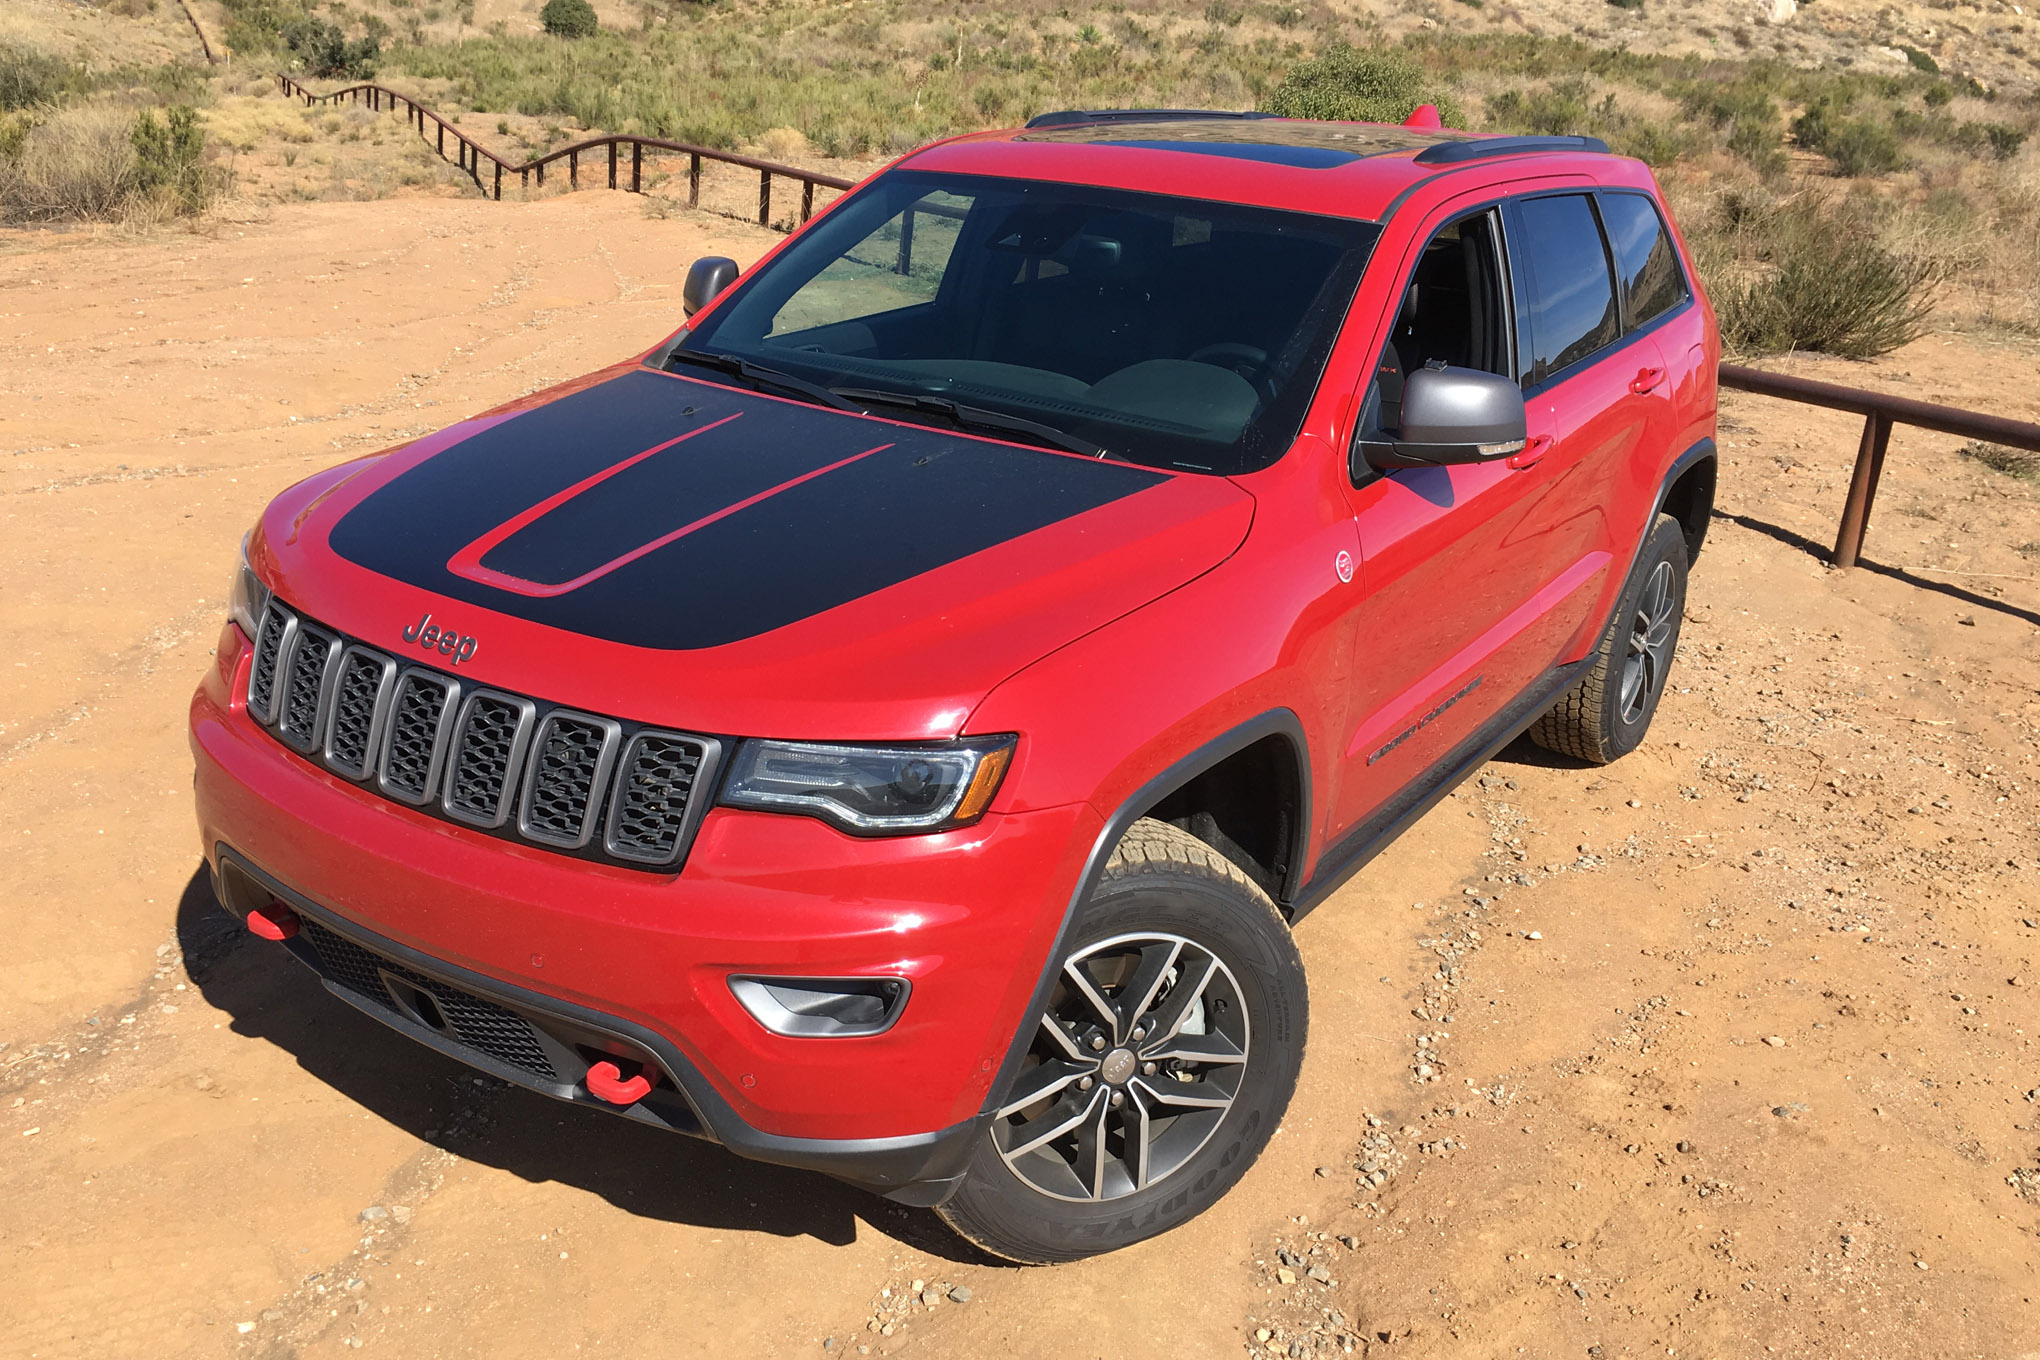 The Trailhawk-only hood treatment not only looks killer, the flat-black decal actually cuts down glare on the street or trail, improving driver visibility in high-light situations.